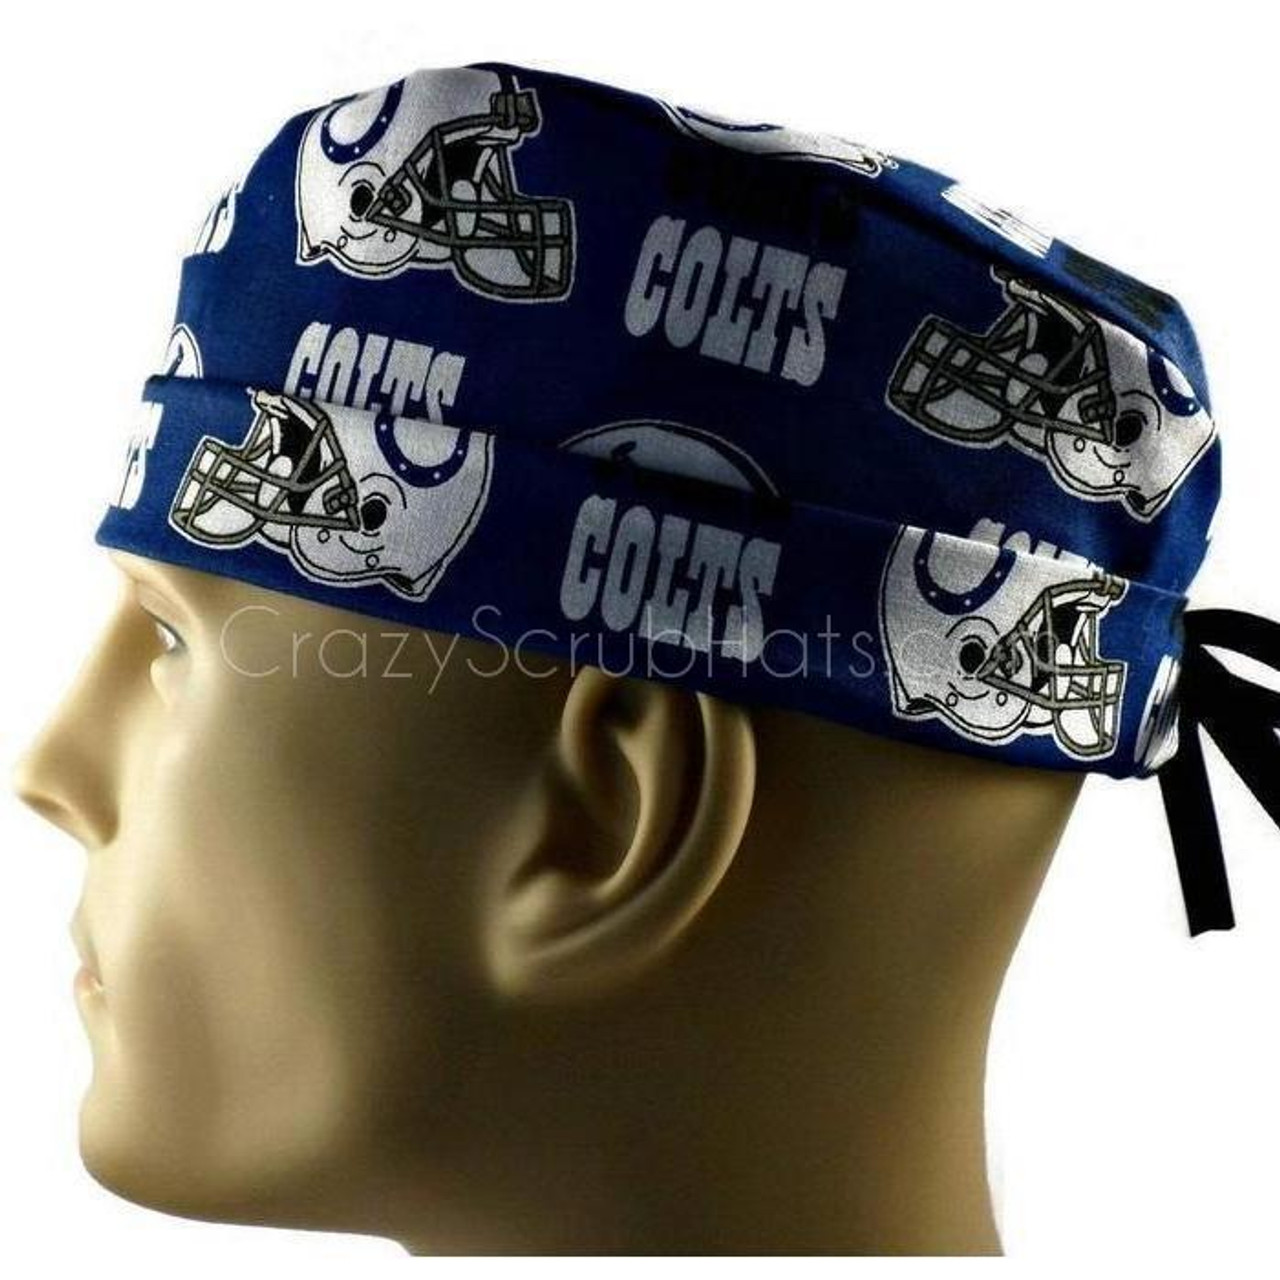 96af7c3faf6 ... sale mens adjustable fold up cuffed or uncuffed surgical scrub hat cap  made with indianapolis colts